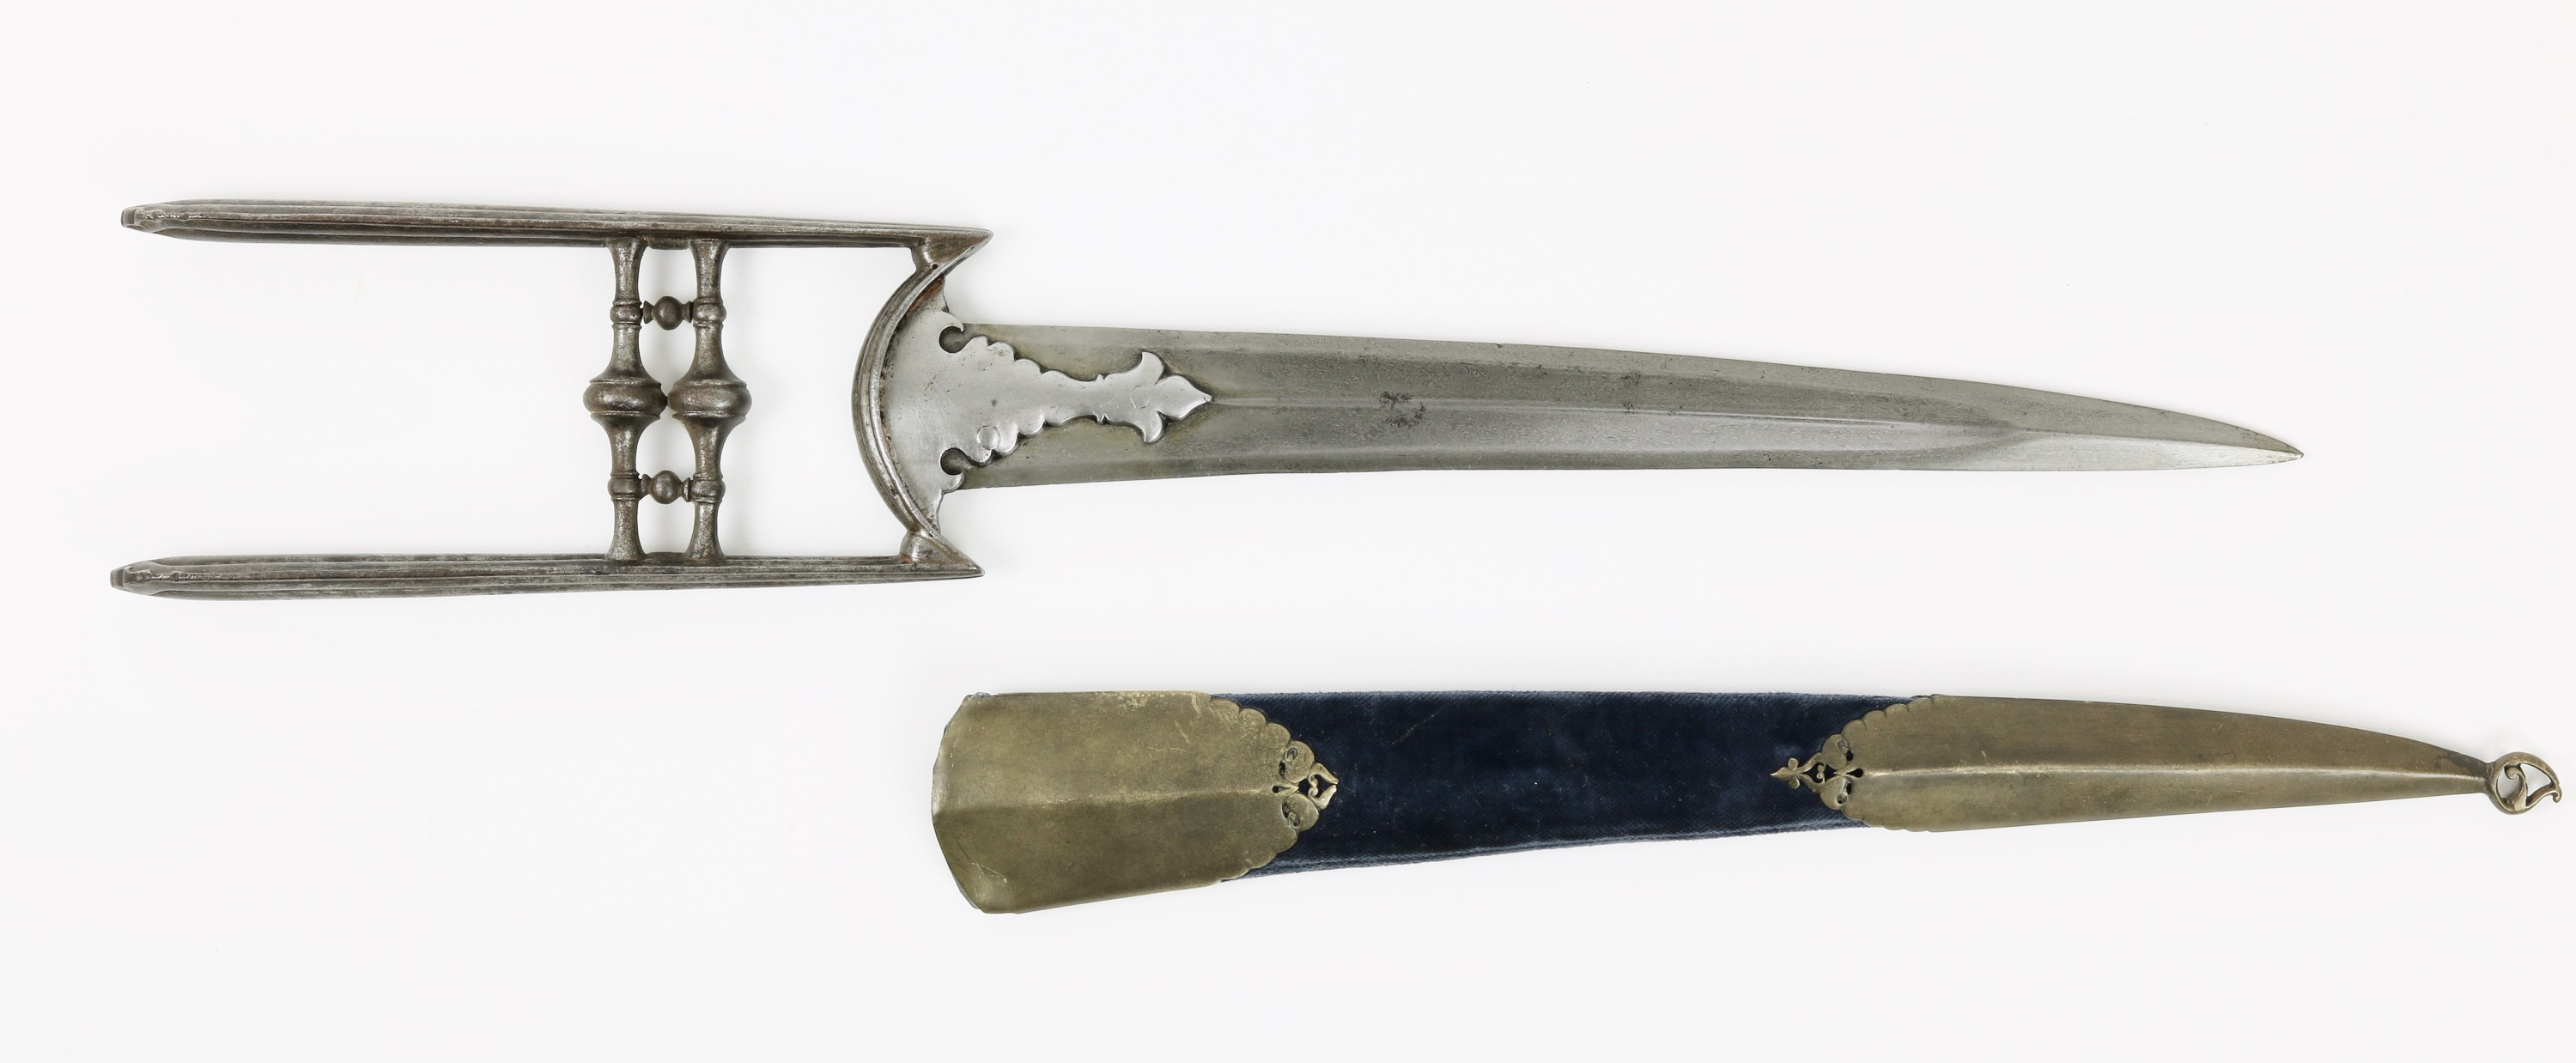 17th century katar with curved blade